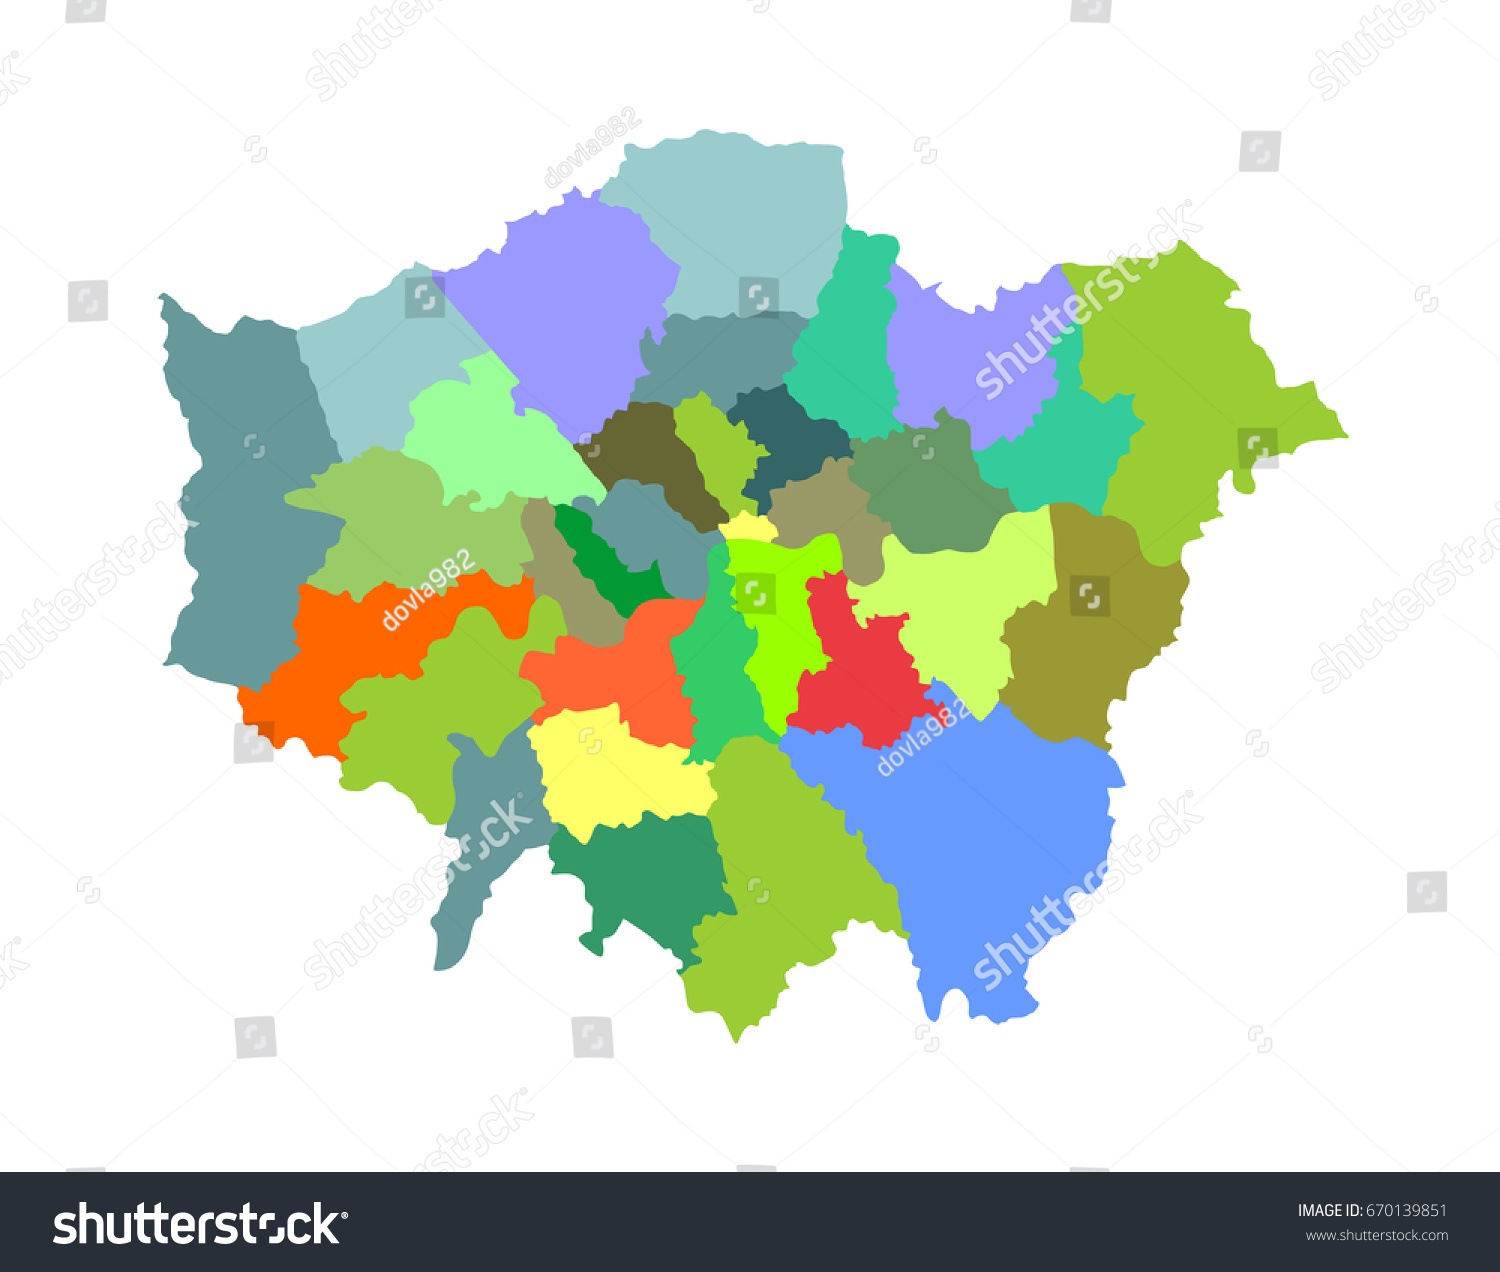 greater london vector silhouette map isolated on white background london map of main town in